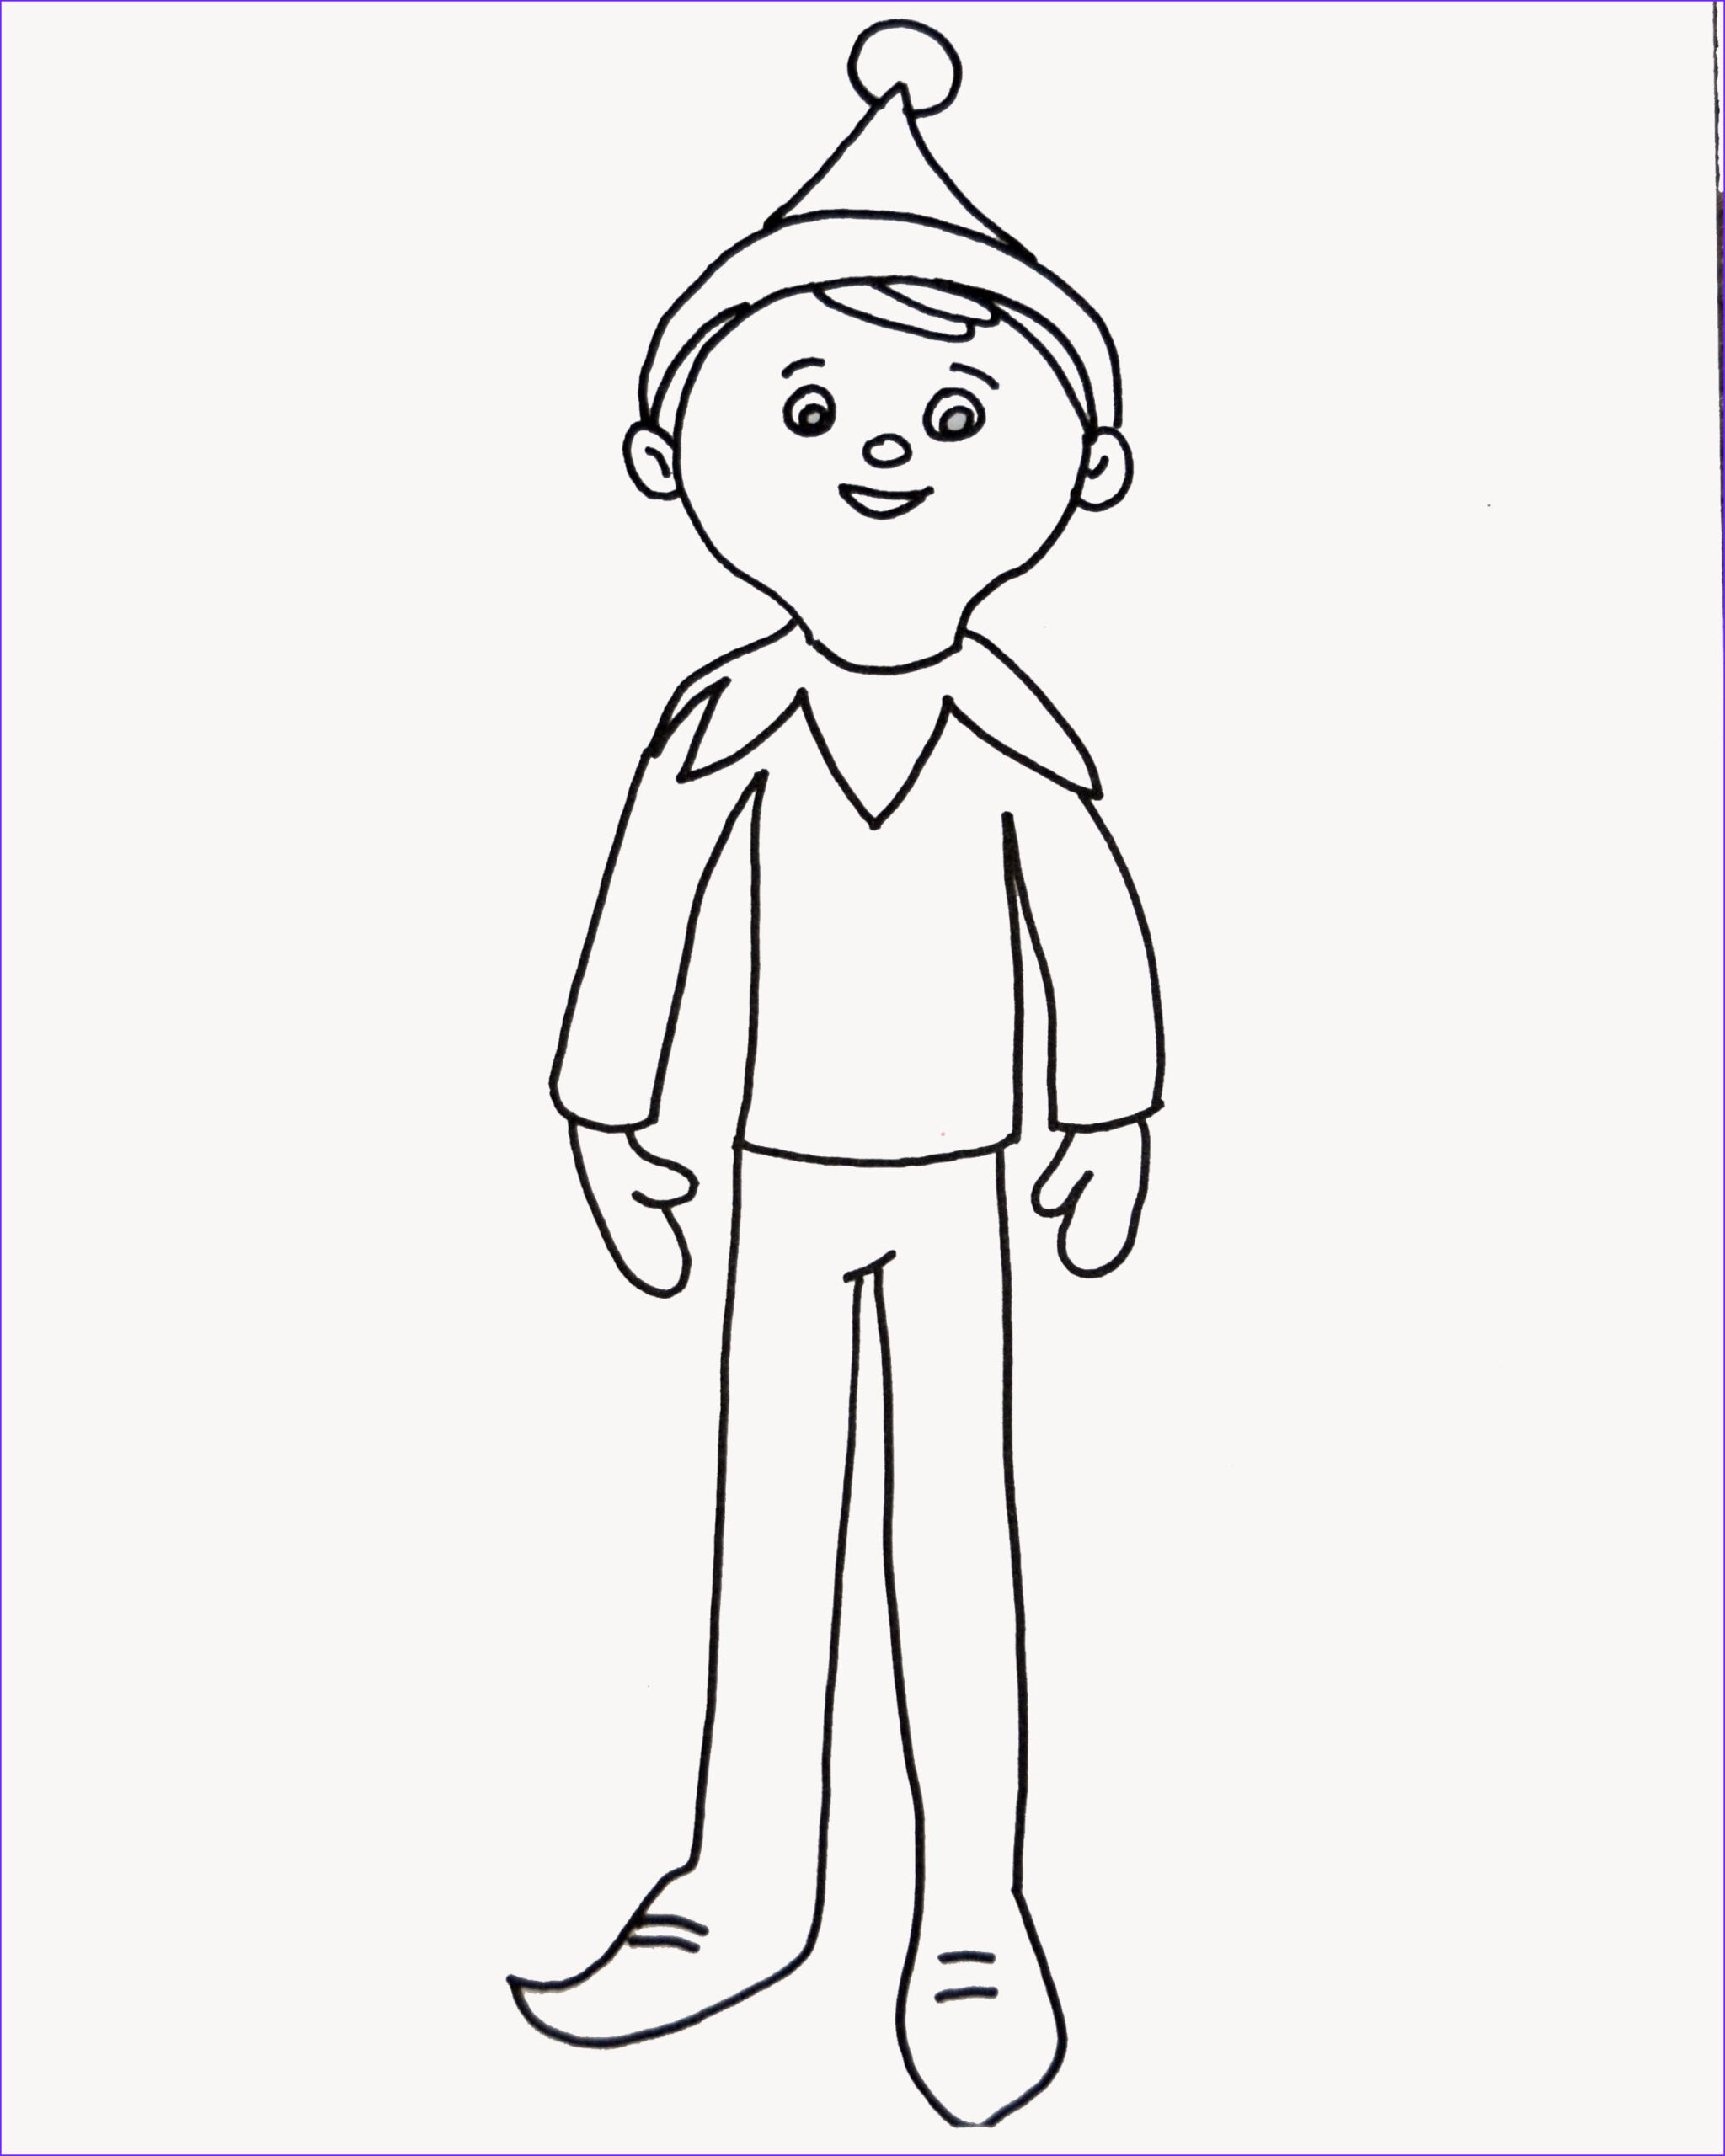 Elf On the Shelf Coloring Sheets Awesome Collection Elf On the Shelf Coloring Page for Elfie and the Kids to